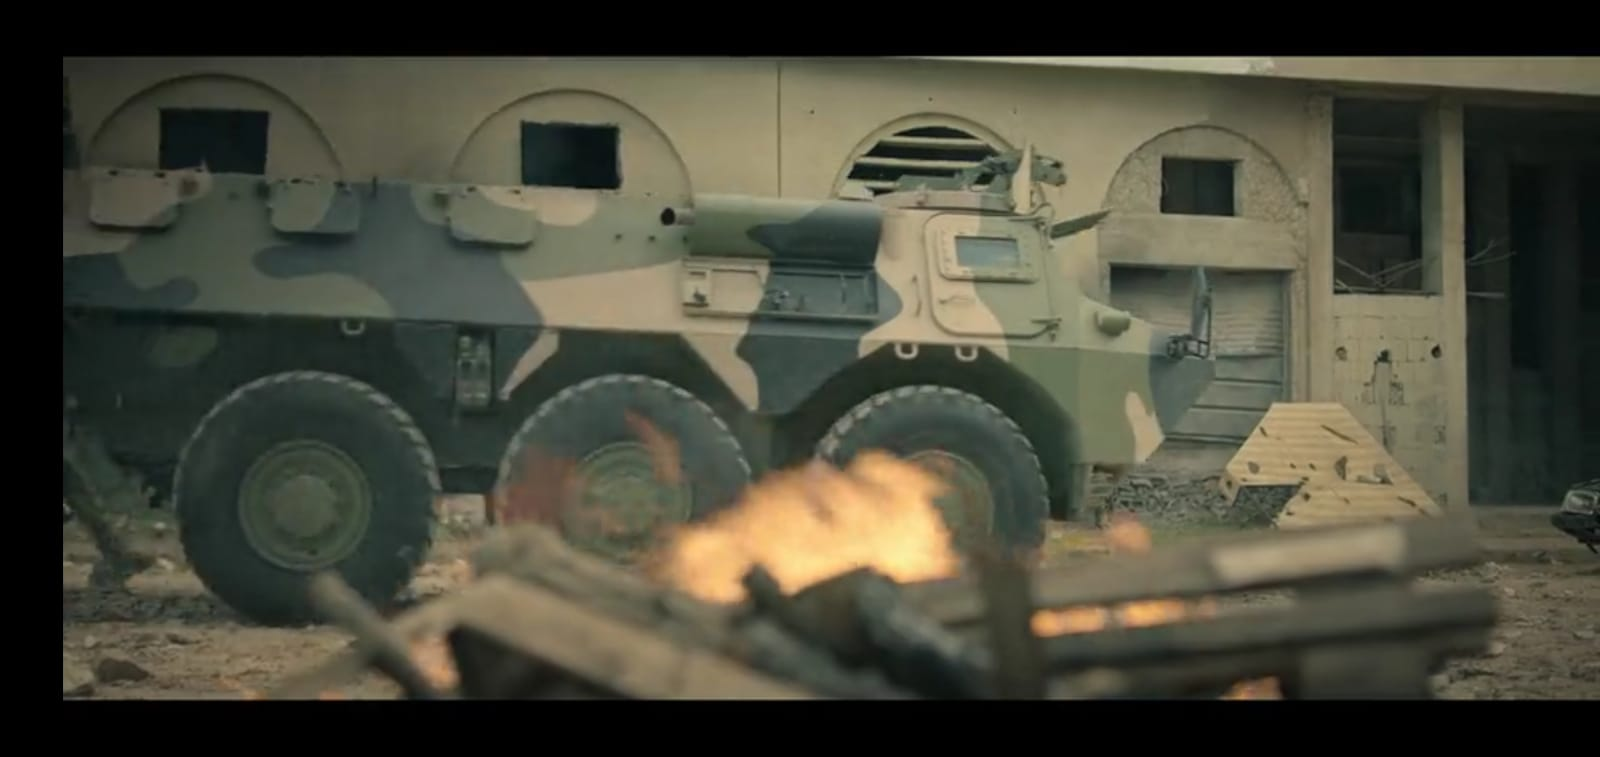 Les FAR et le Cinema / Moroccan Armed Forces in Movies - Page 11 610